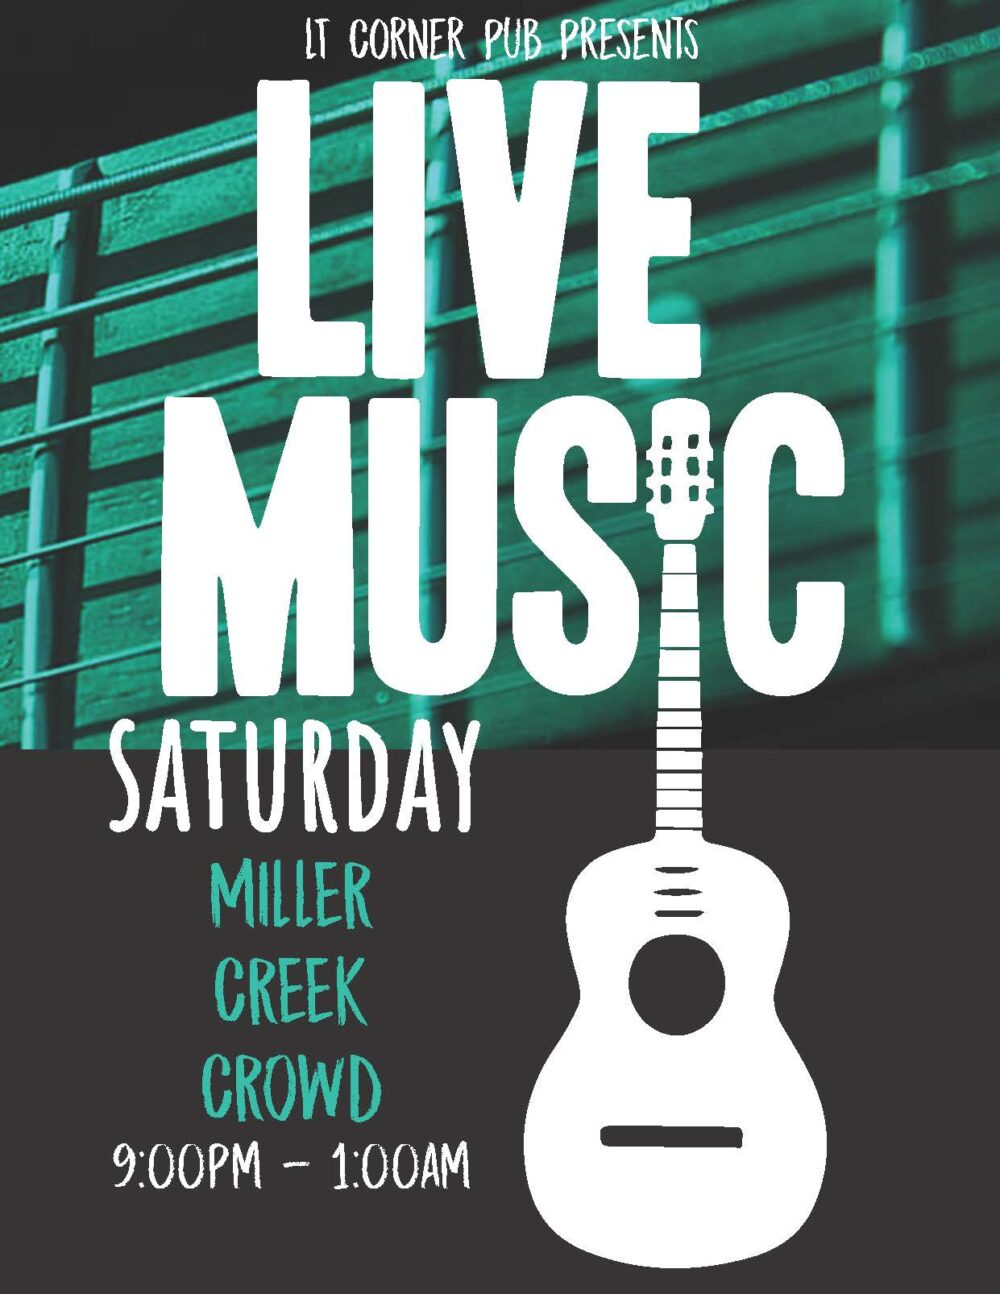 Live Music Saturday with Miller Creek Crowd